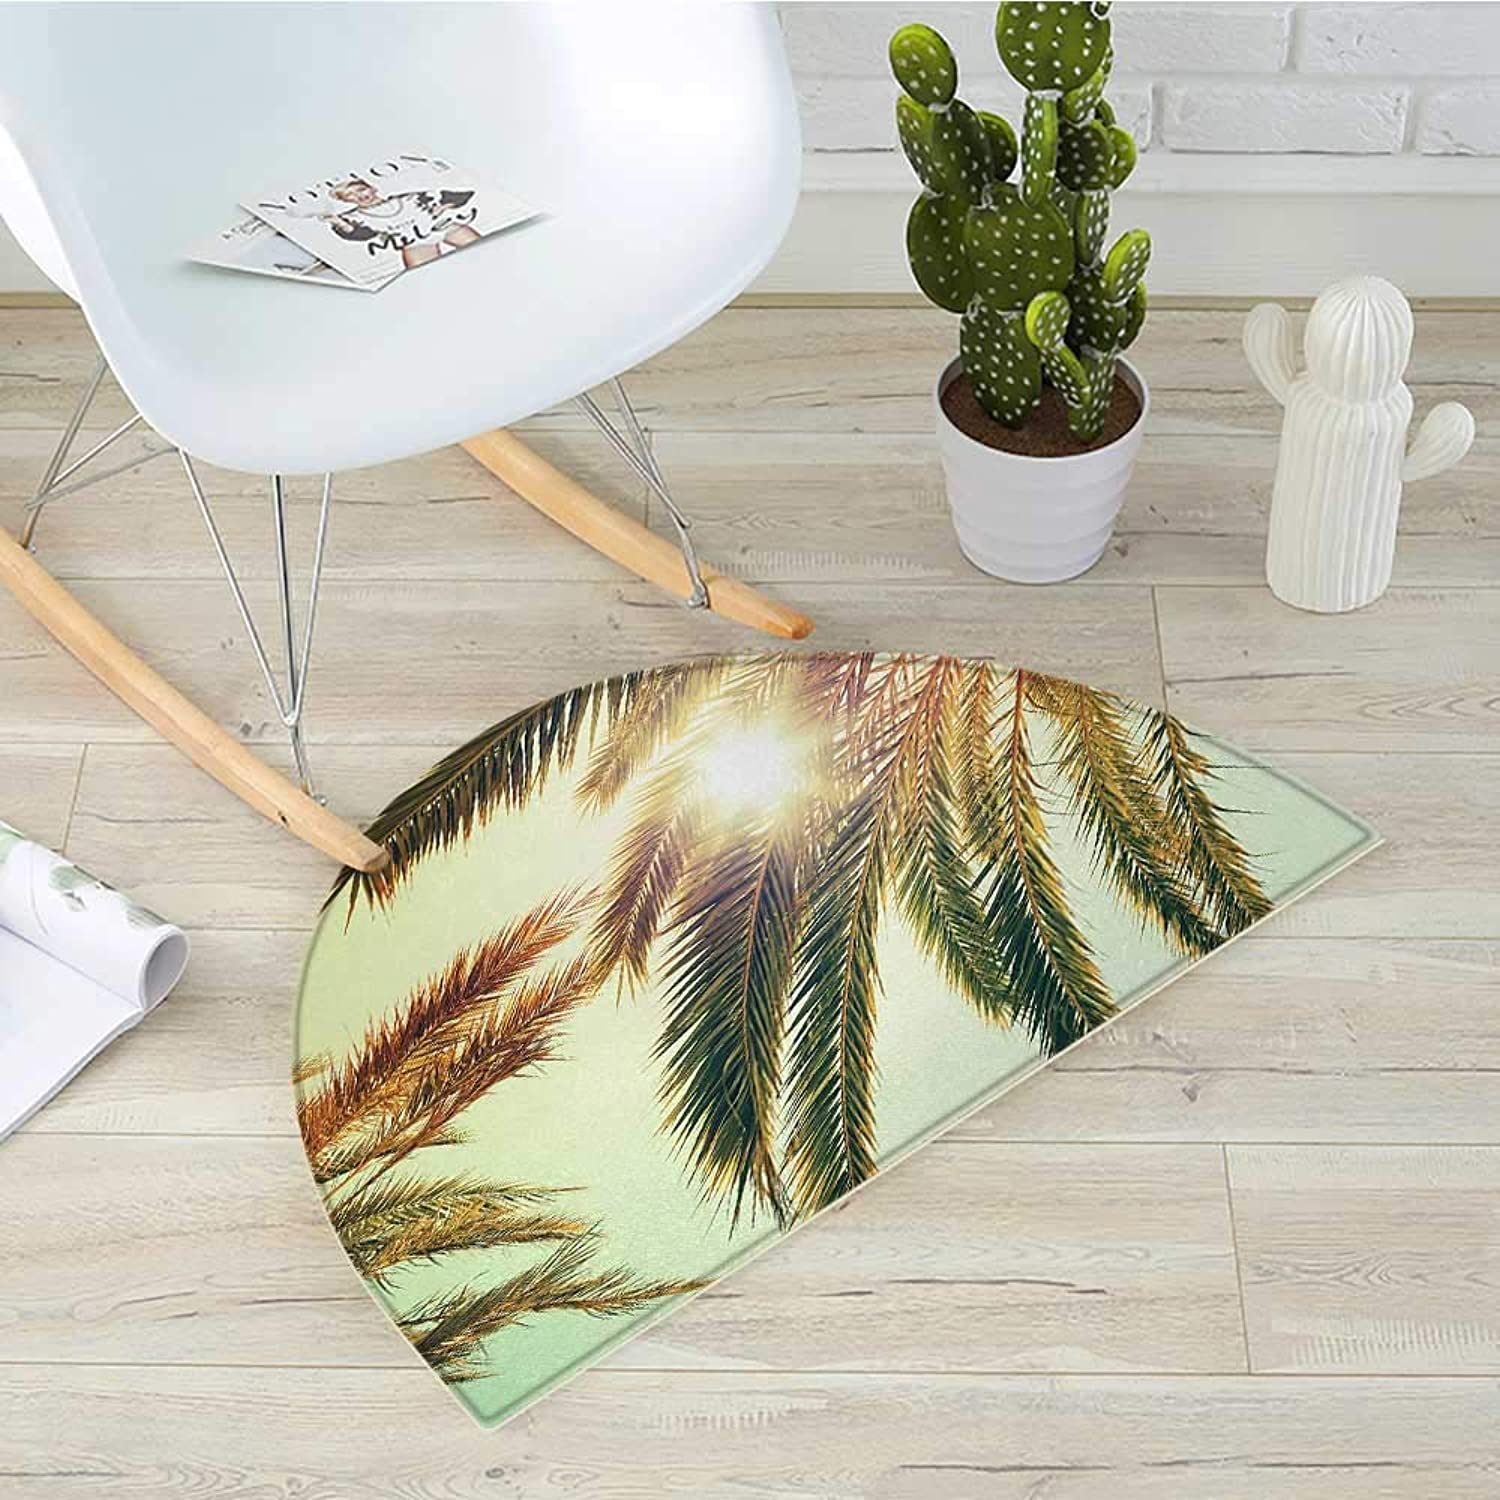 Palm Leaf Semicircle Doormat Beaming Sun Through Tree Branches Retro Effect Exotic Holiday Vacation Image Halfmoon doormats H 43.3  xD 64.9  Green orange